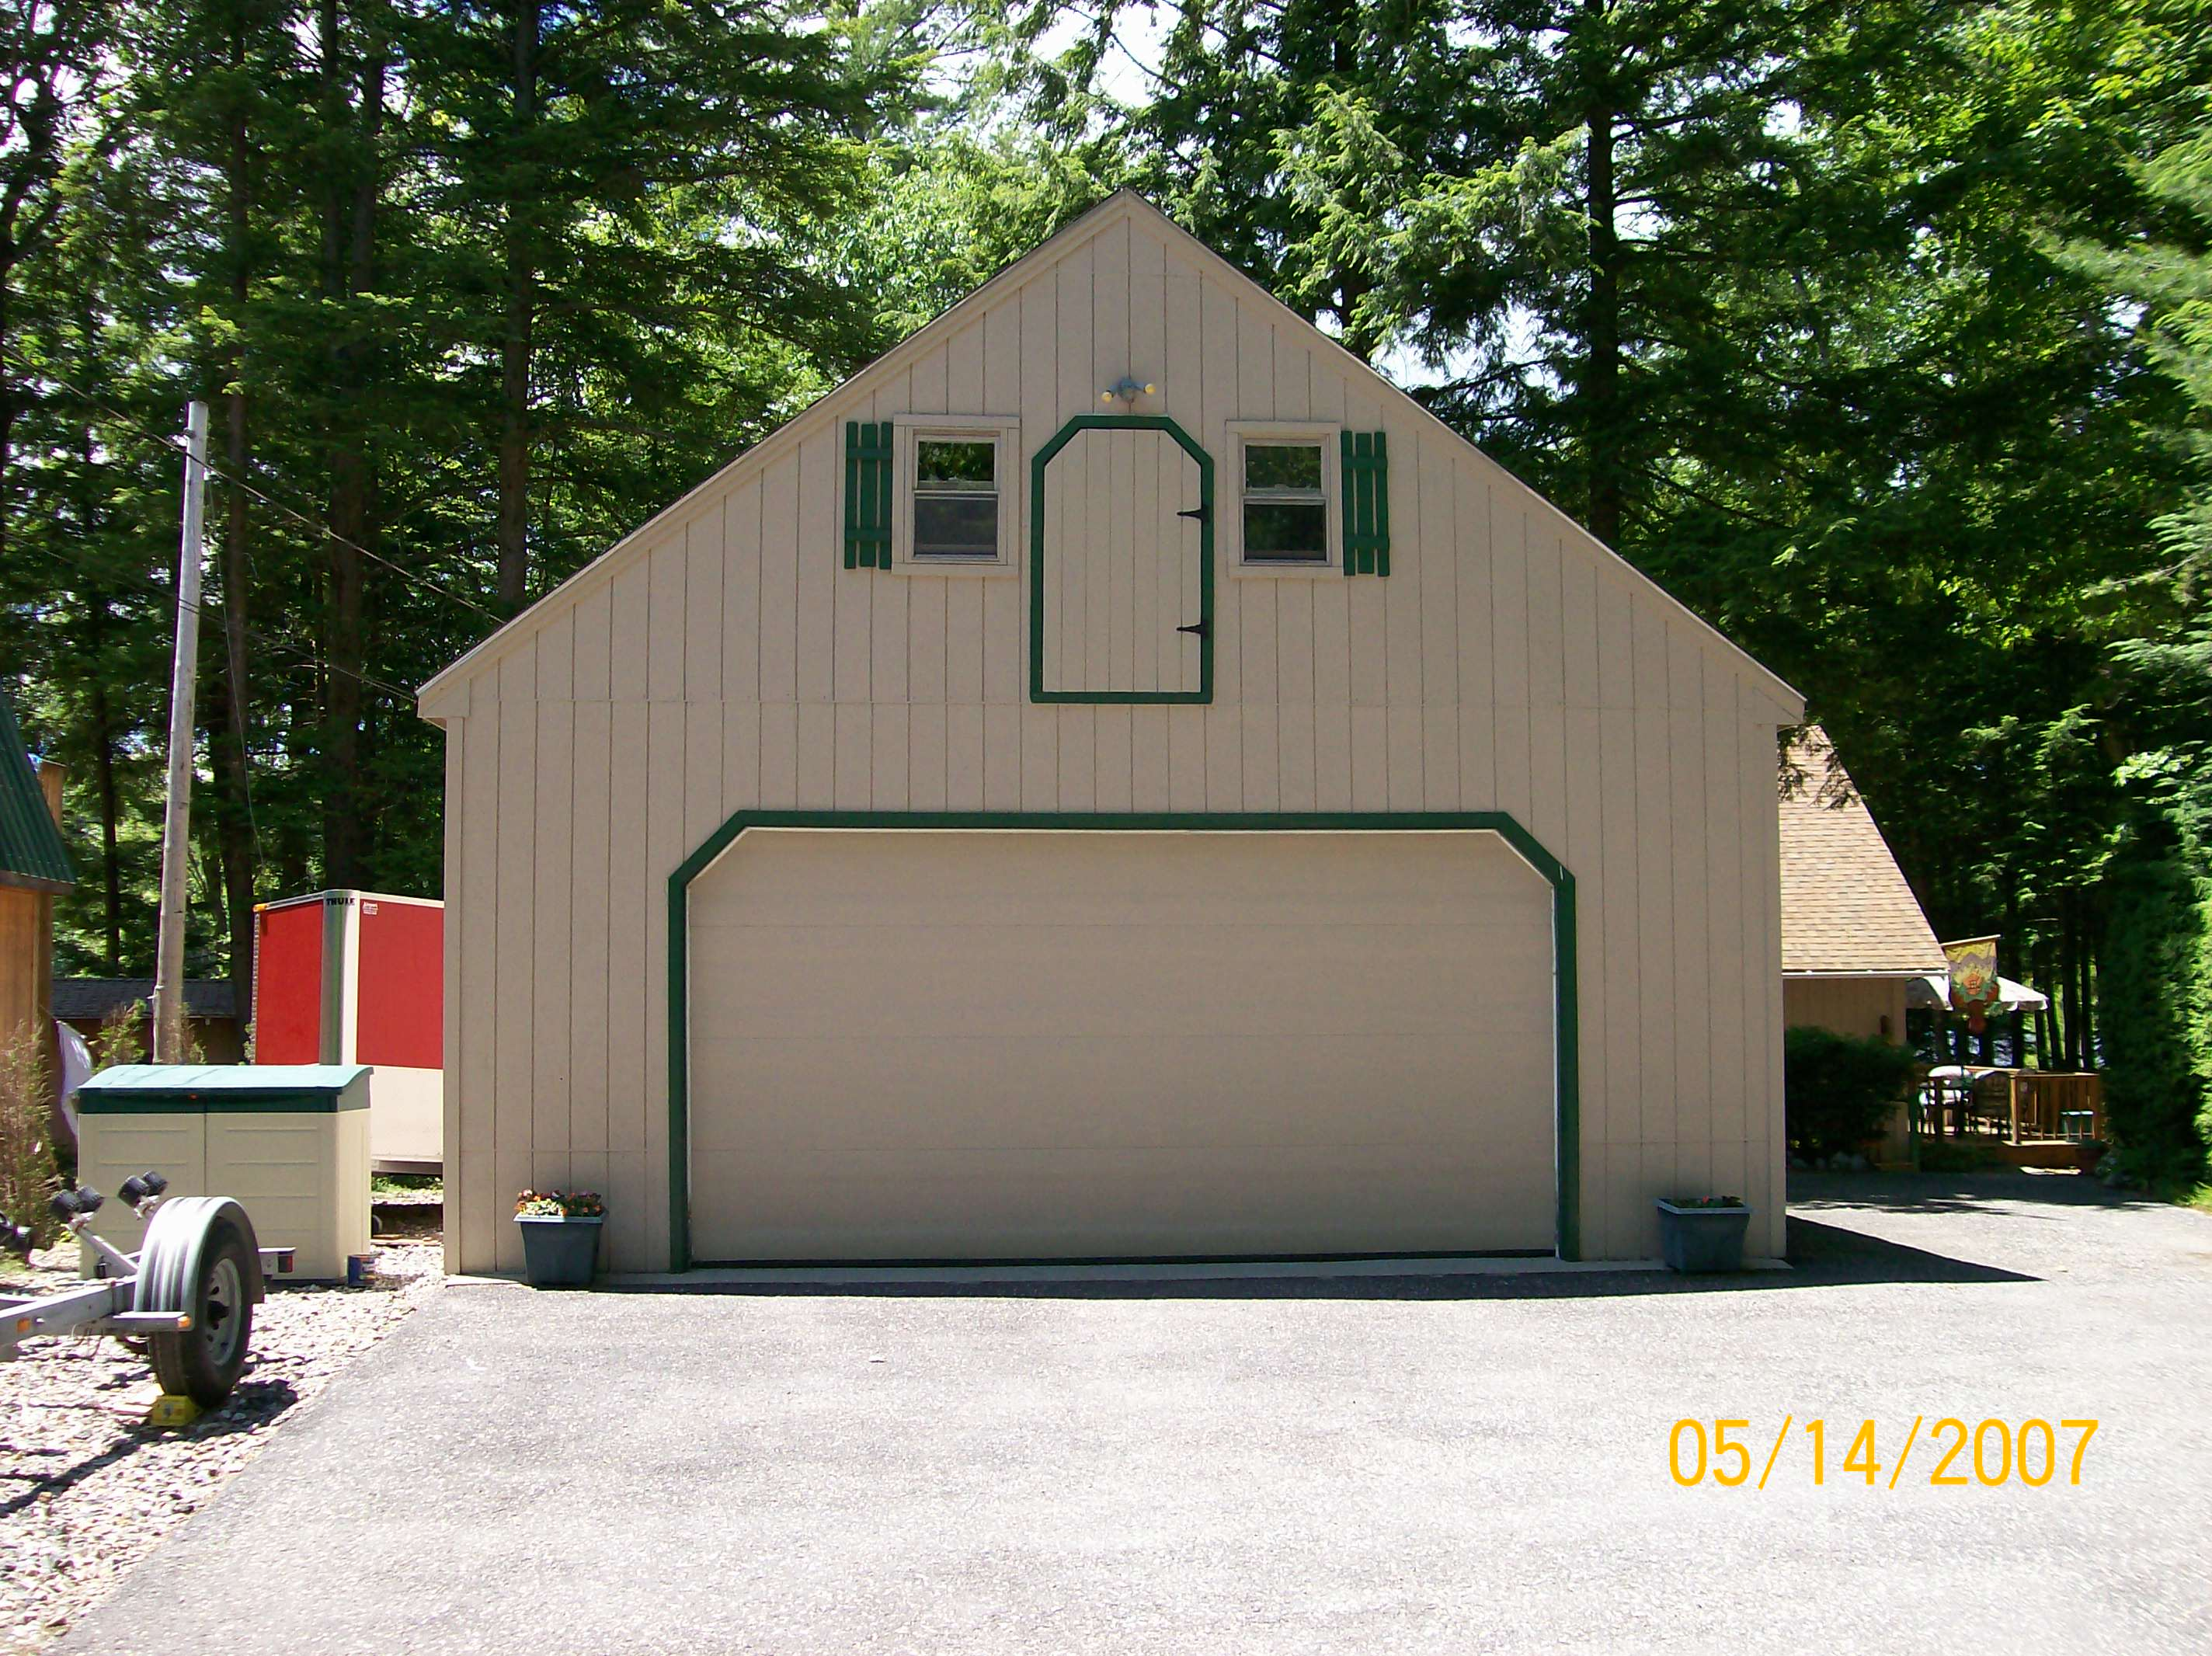 harrison maine vacation real estate for sale 4 season